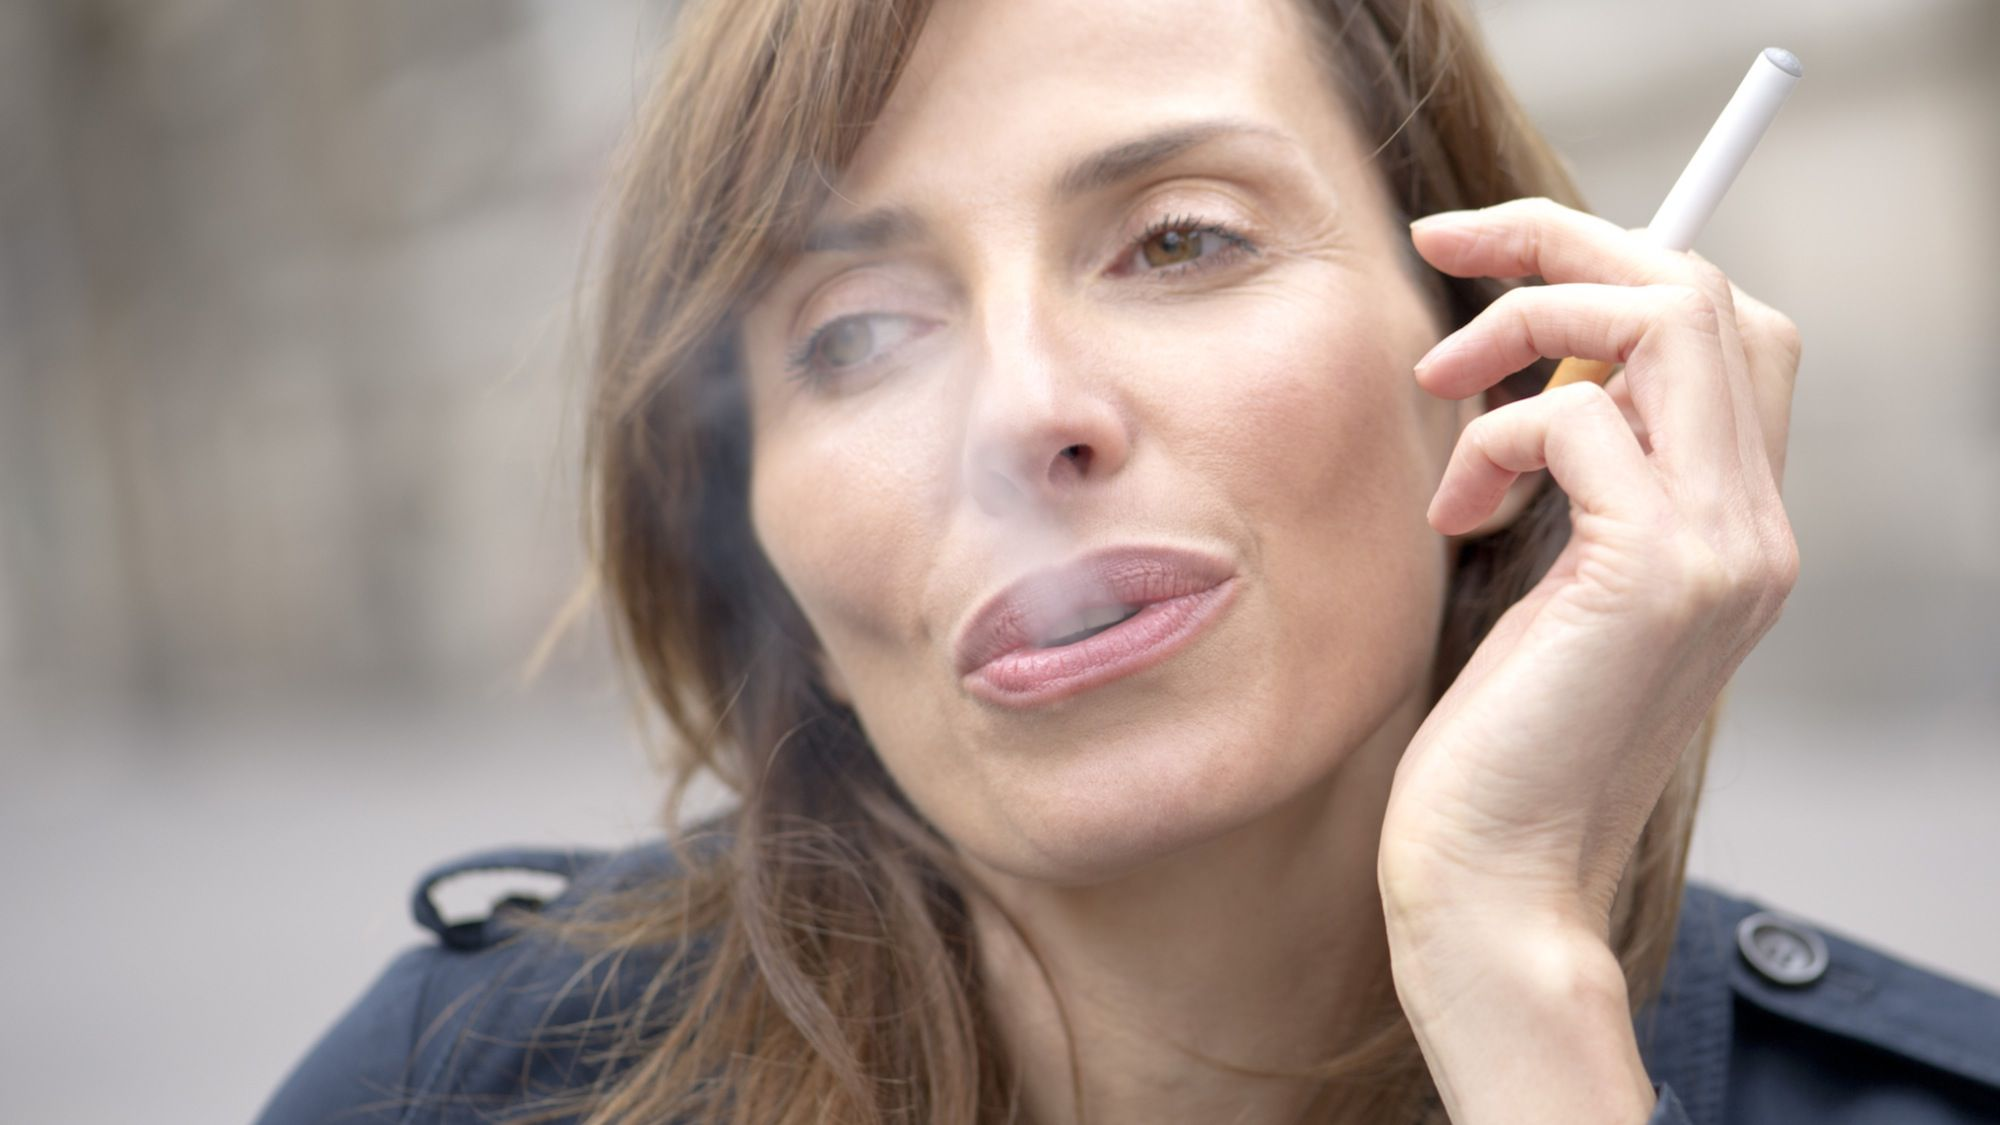 Smoke cigarettes learning to women Deep Inhale